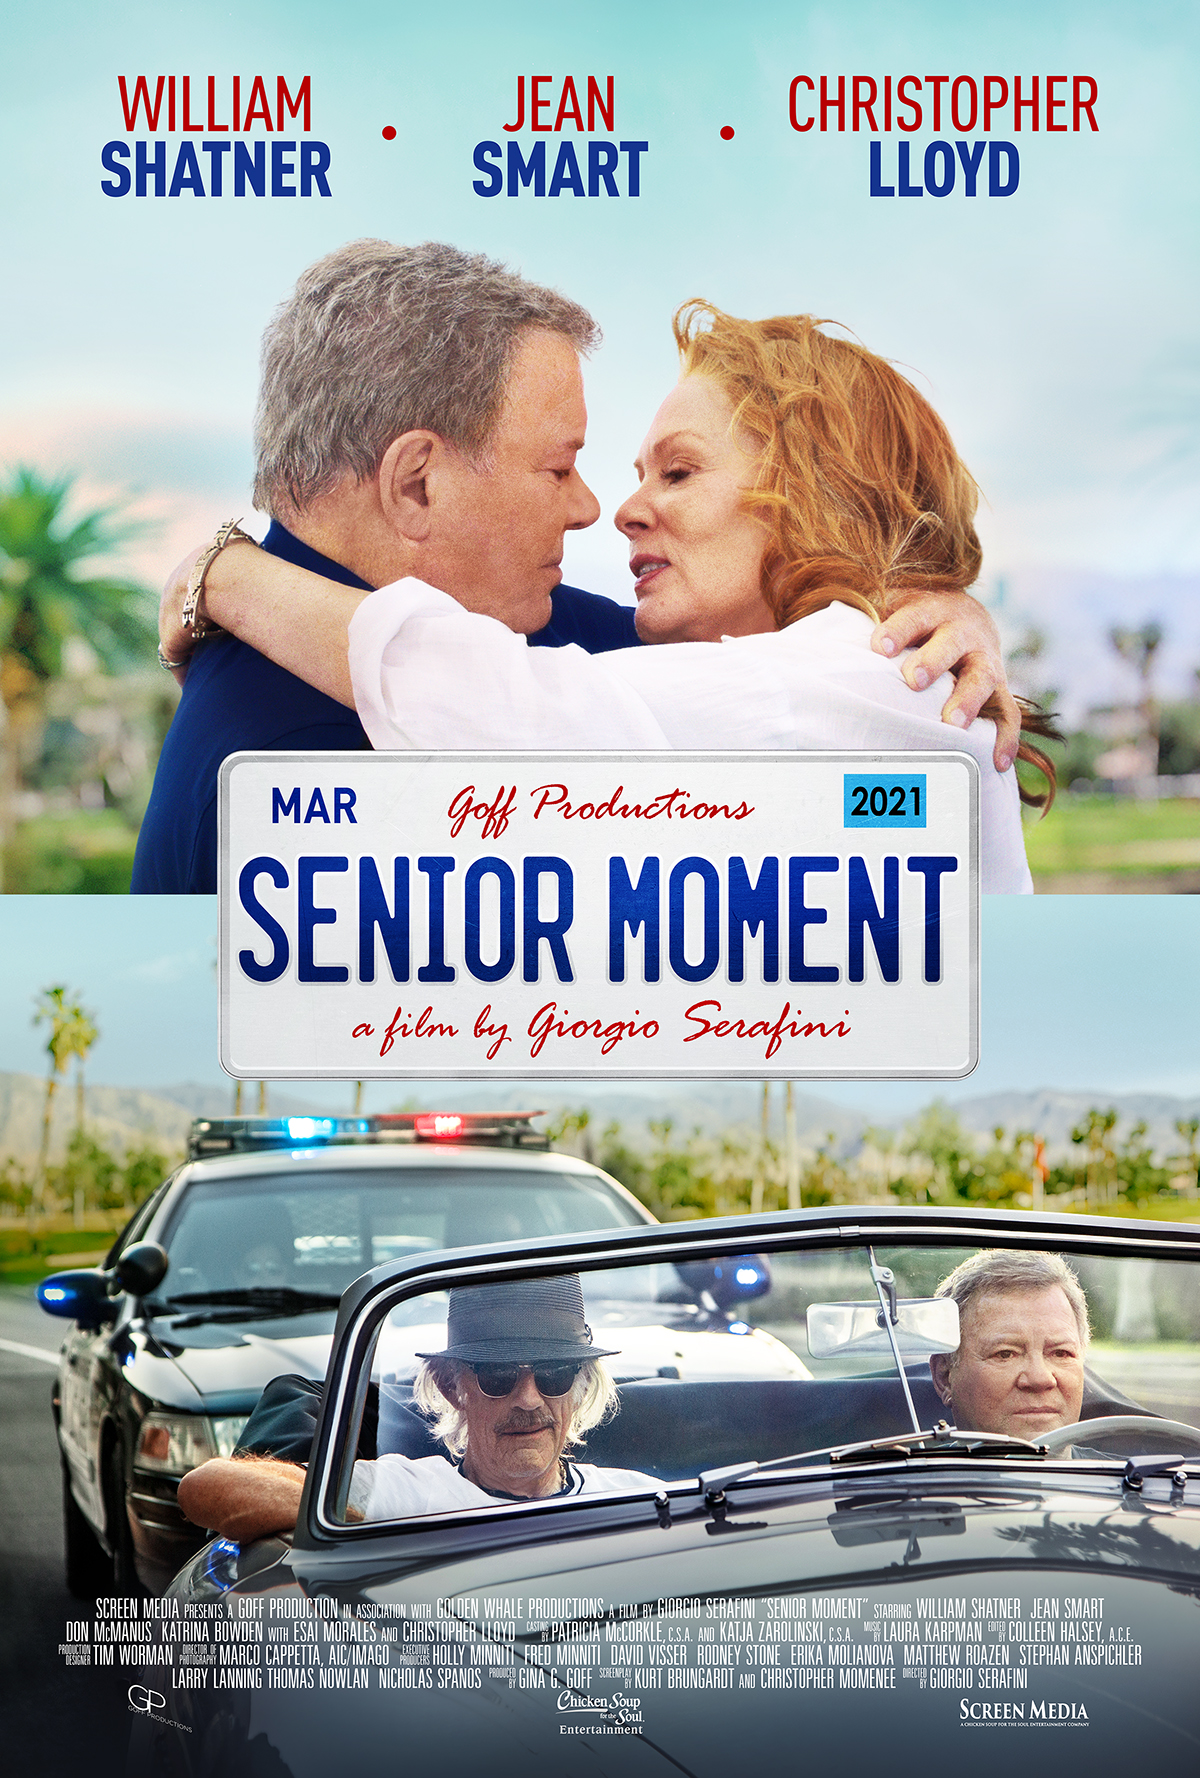 Christopher Lloyd, William Shatner, and Jean Smart in Senior Moment (2021)